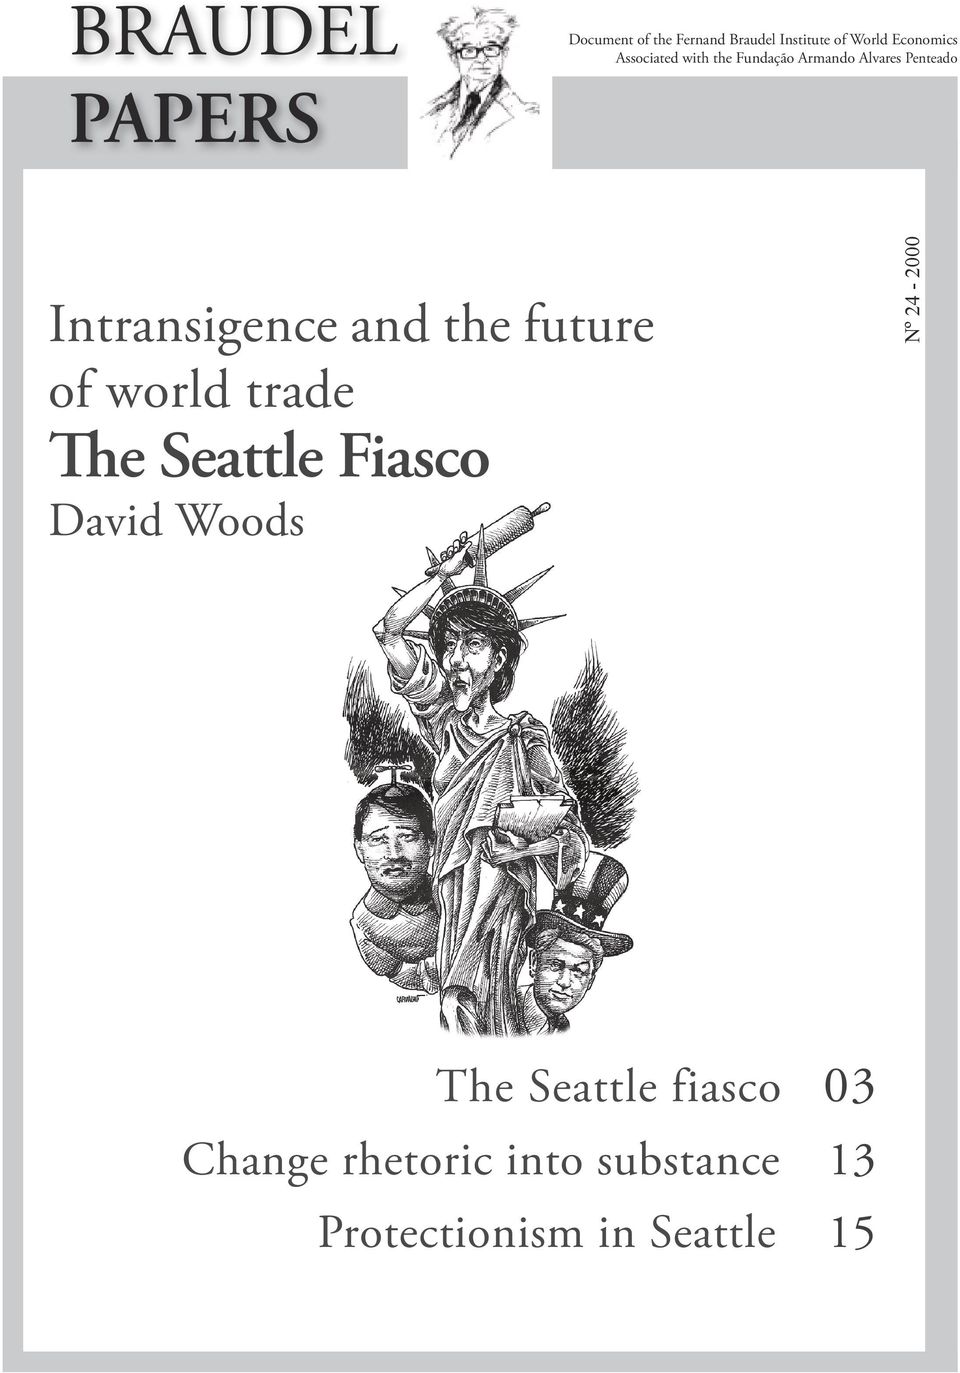 and the future of world trade The Seattle Fiasco David Woods Nº 24-2000